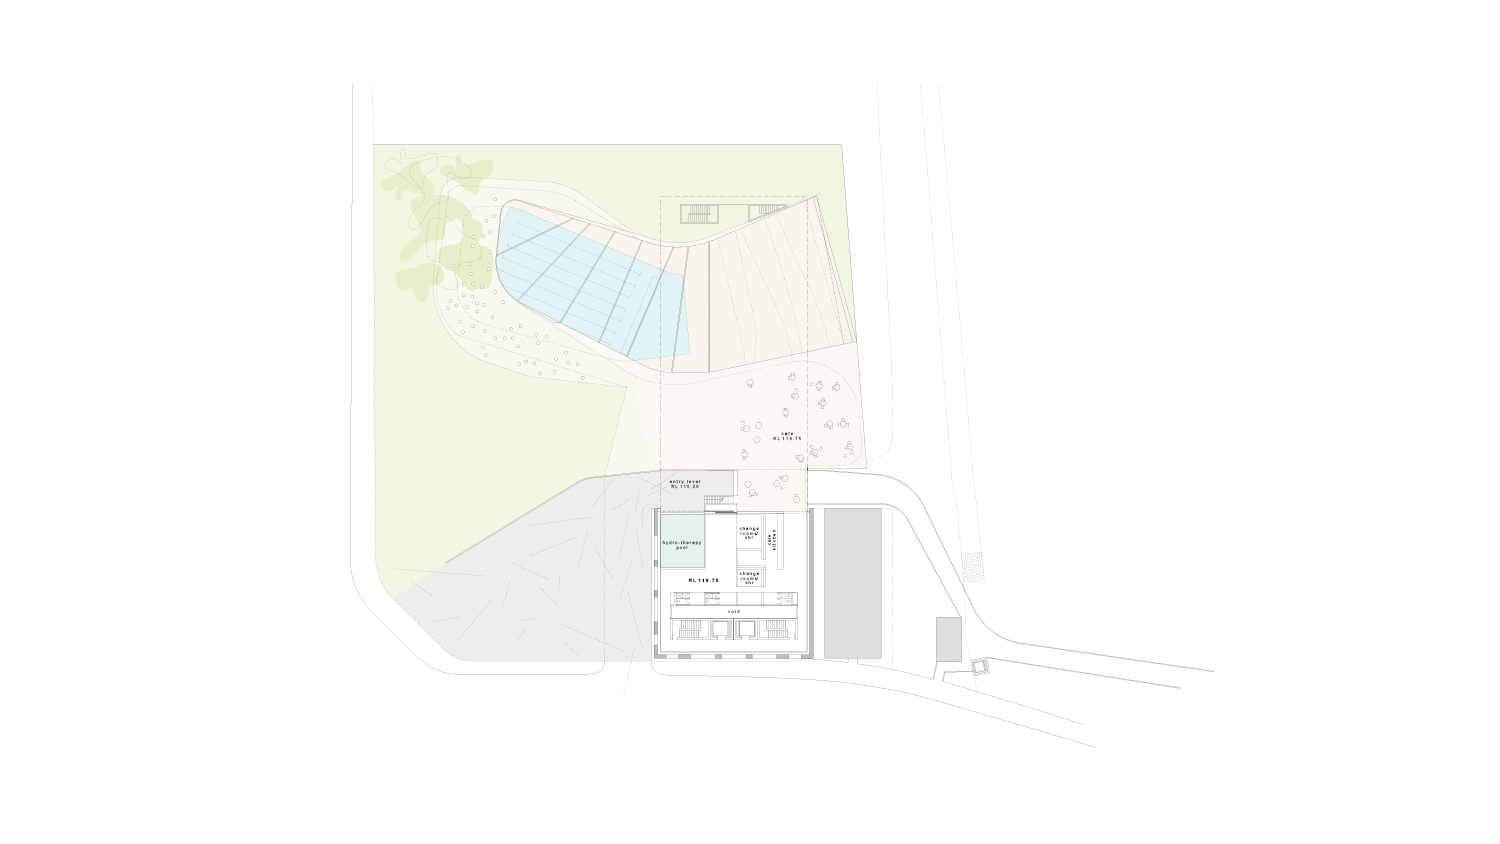 pyrmont aquatic centre dwg4.jpg